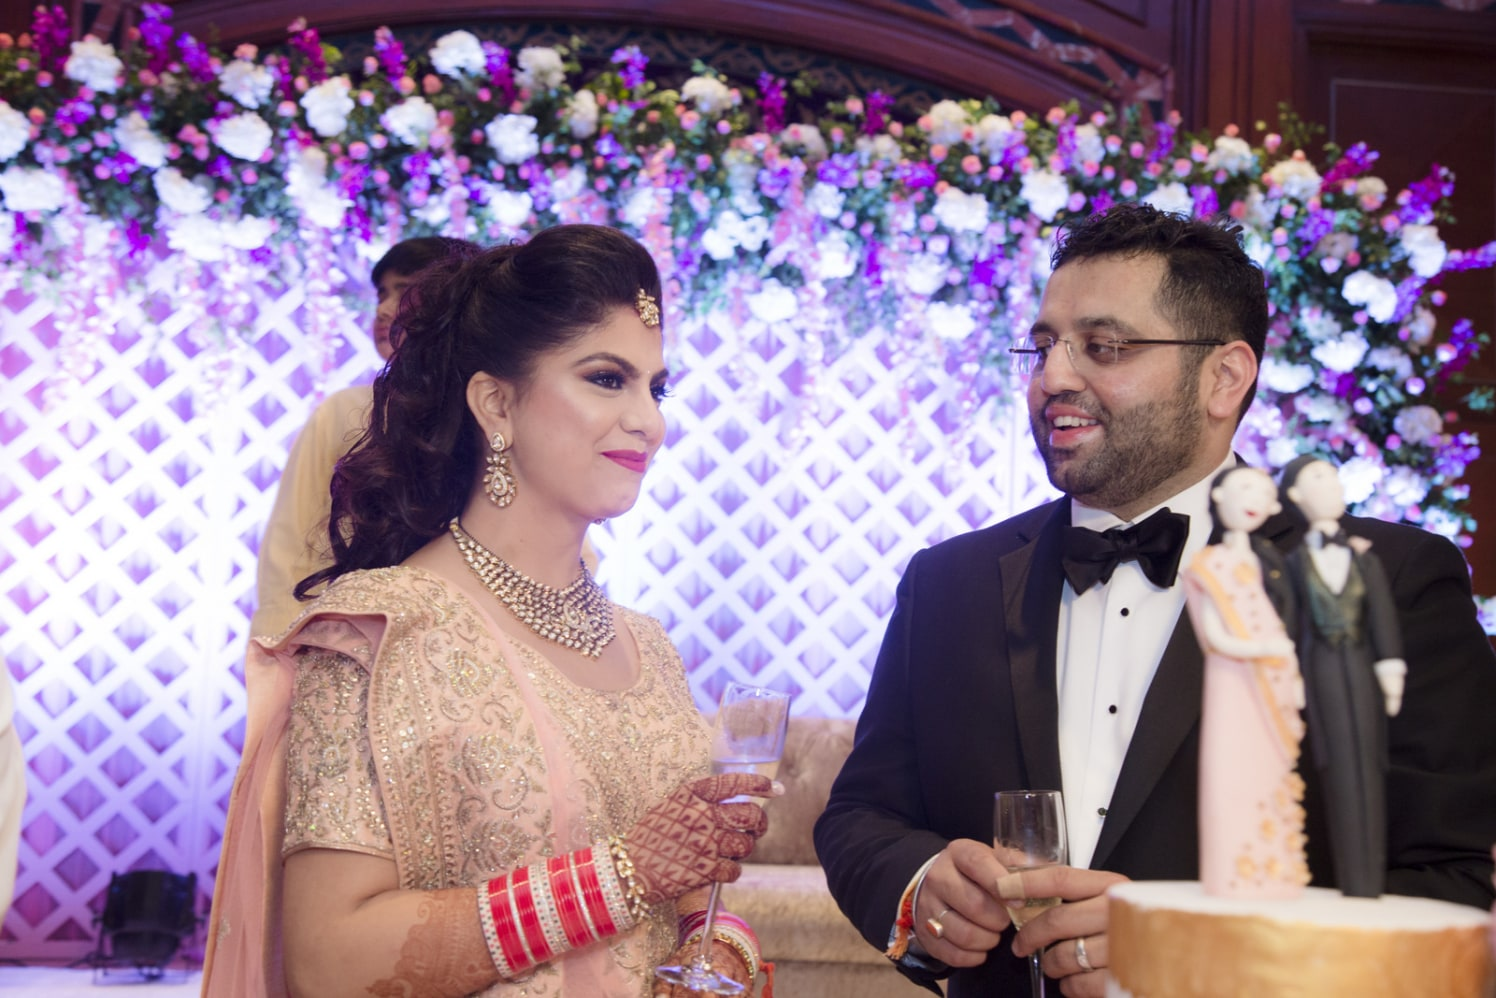 Captivating Couples At Wedding Reception by Arpit Gulati Wedding-photography | Weddings Photos & Ideas